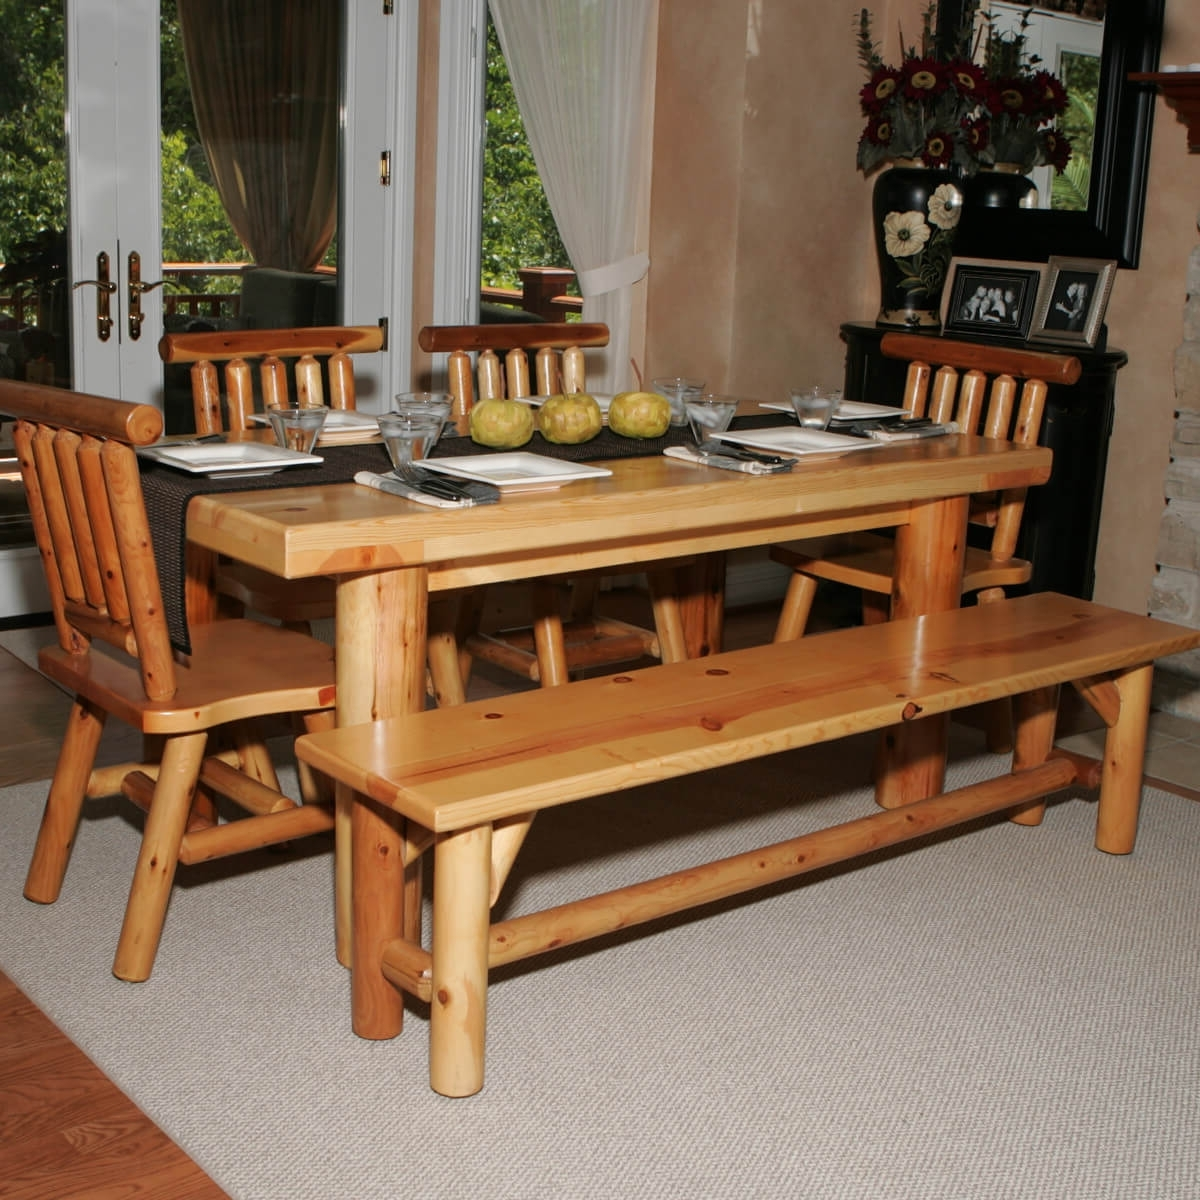 26 Dining Room Sets (Big And Small) With Bench Seating (2018) Throughout Trendy Indoor Picnic Style Dining Tables (View 15 of 25)